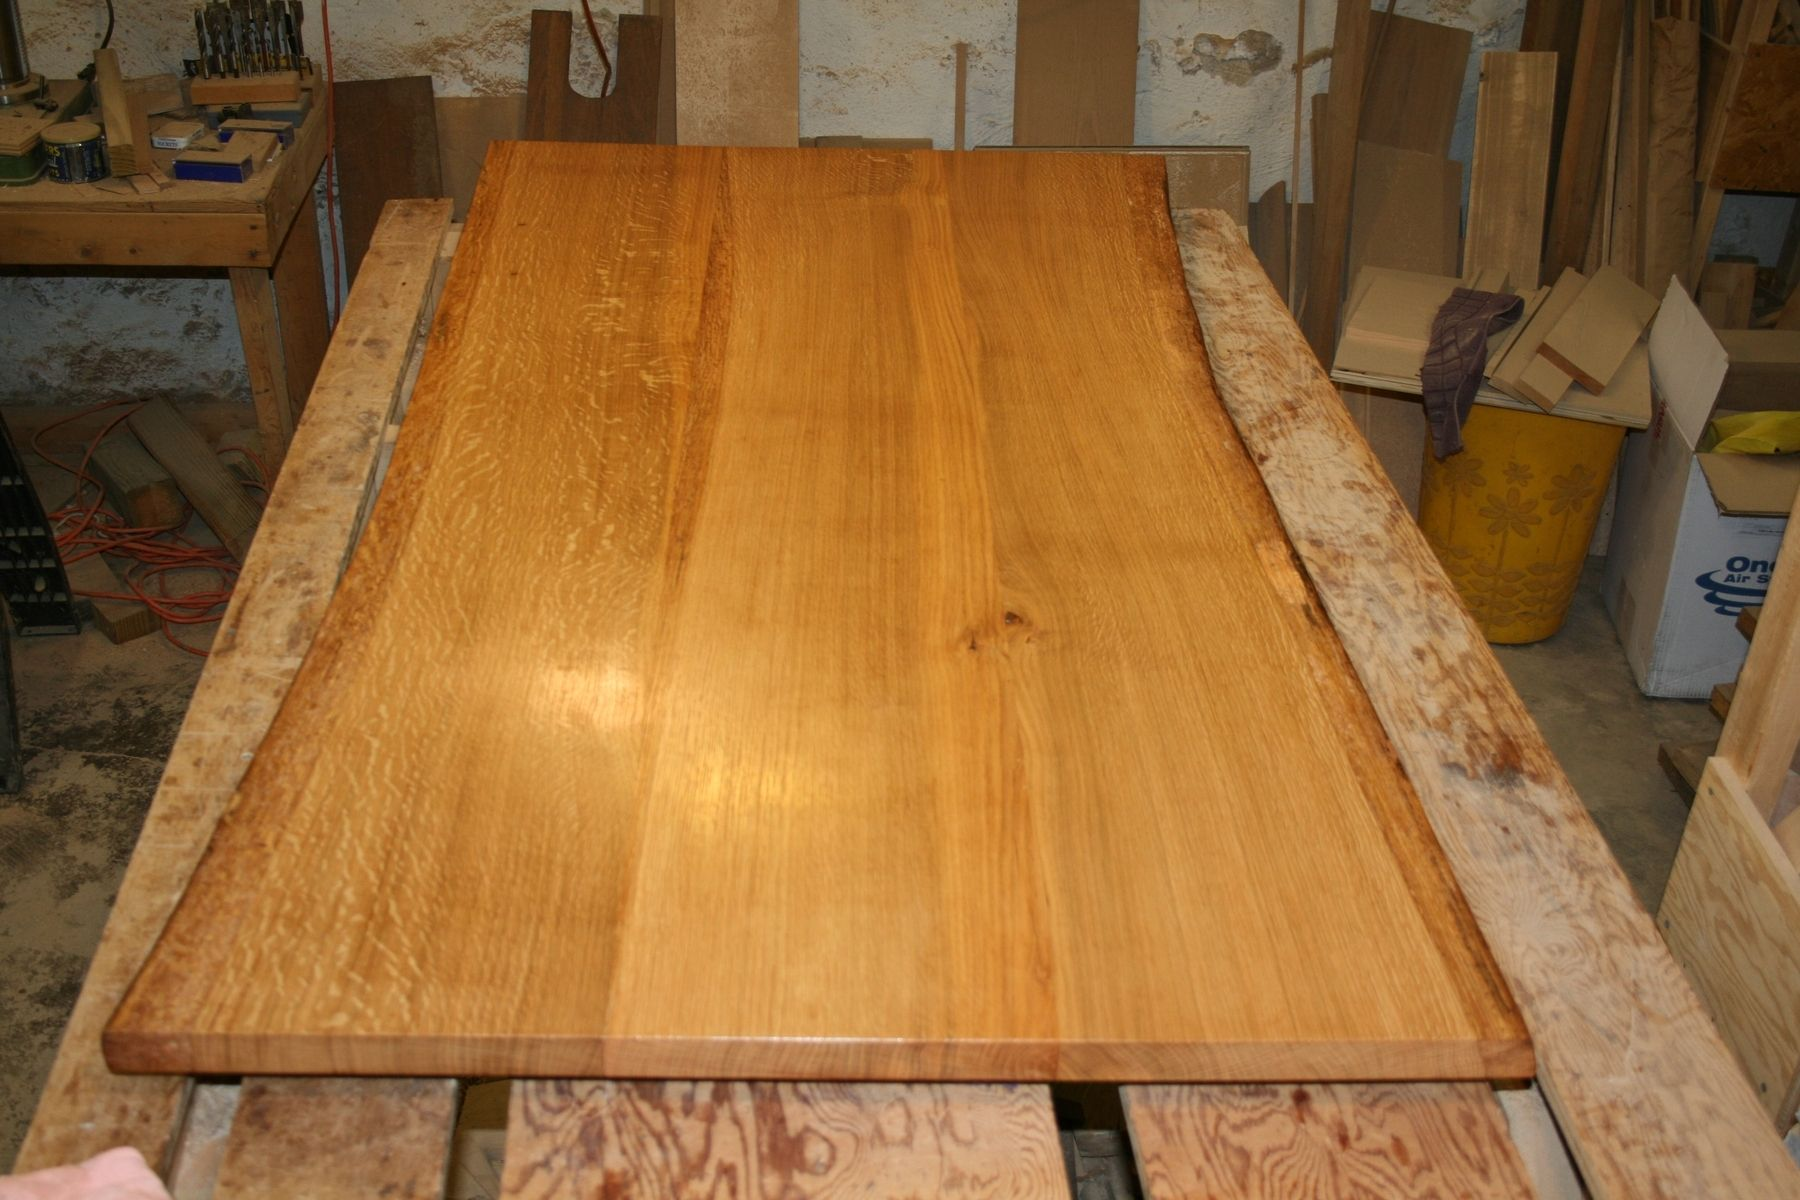 Wood Slab Countertop Counter Tops Islands Tree Purposed